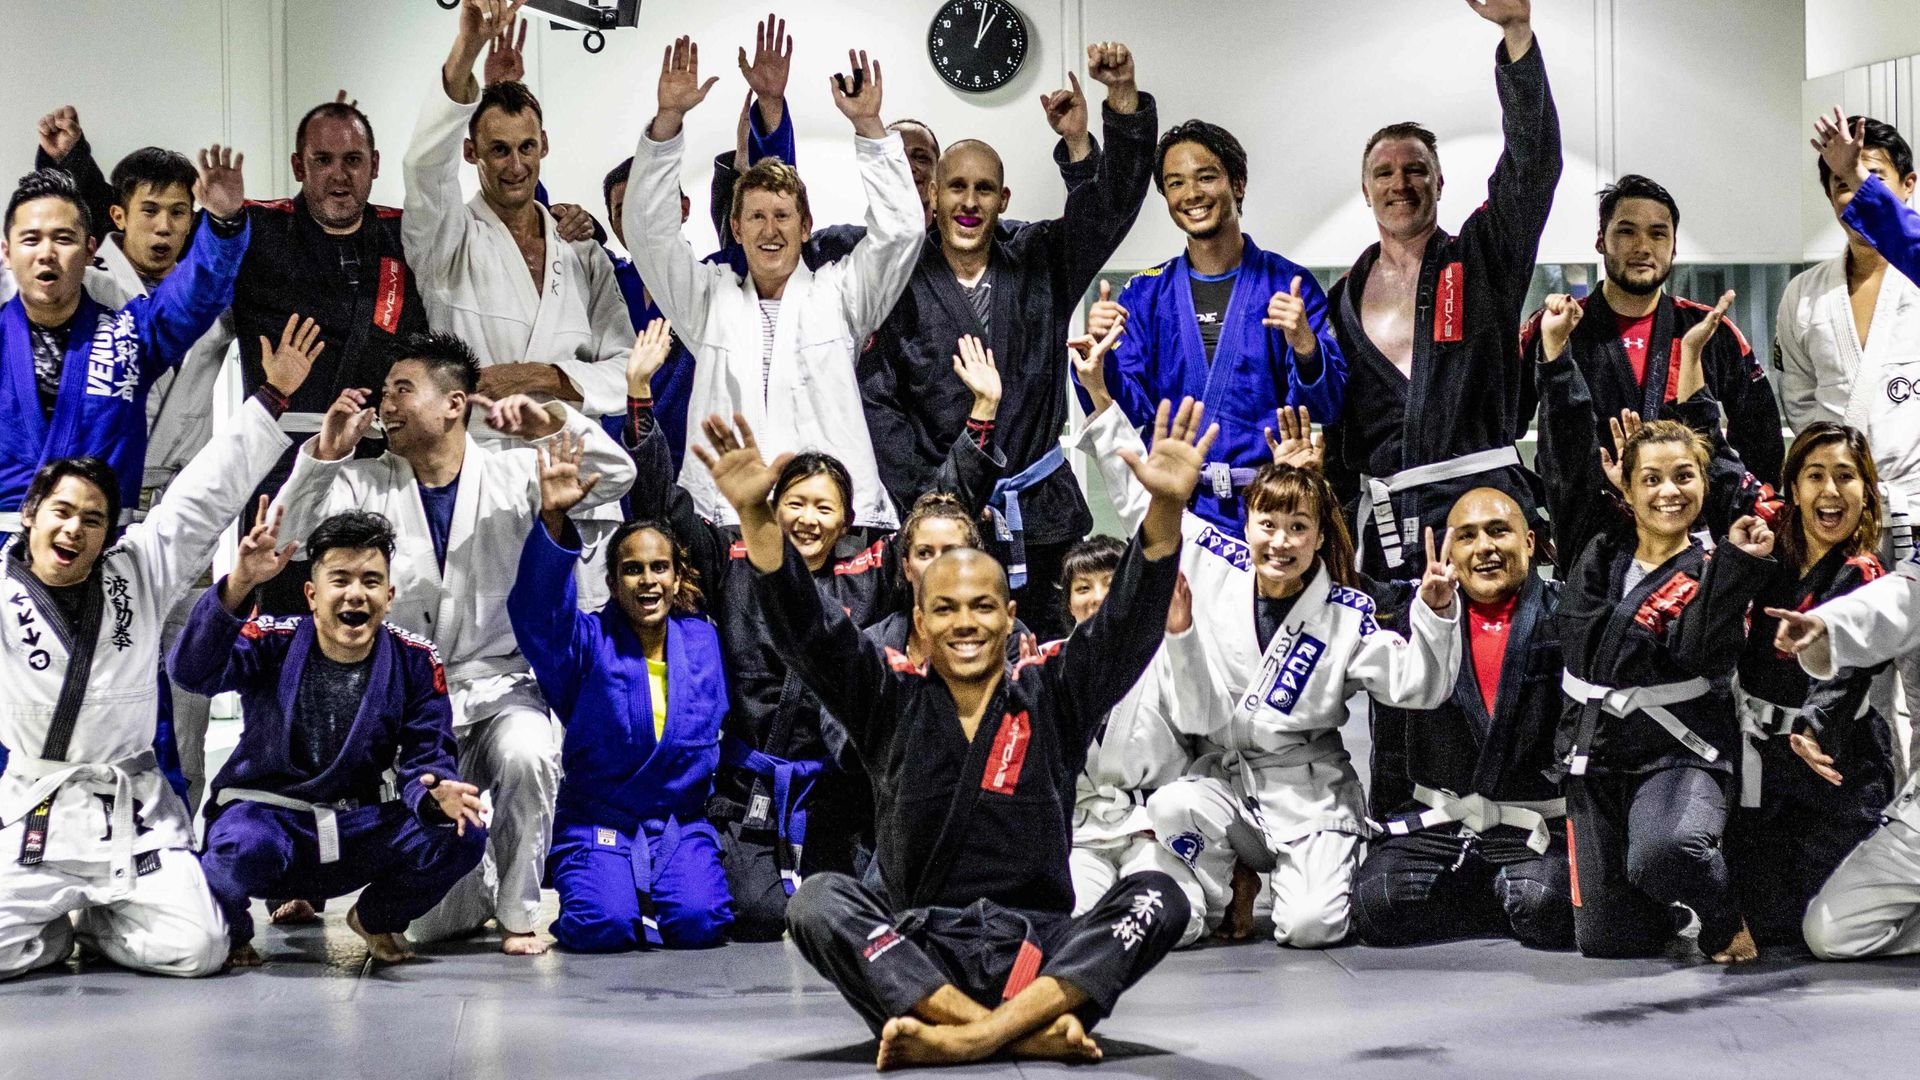 A group of BJJ students cheering